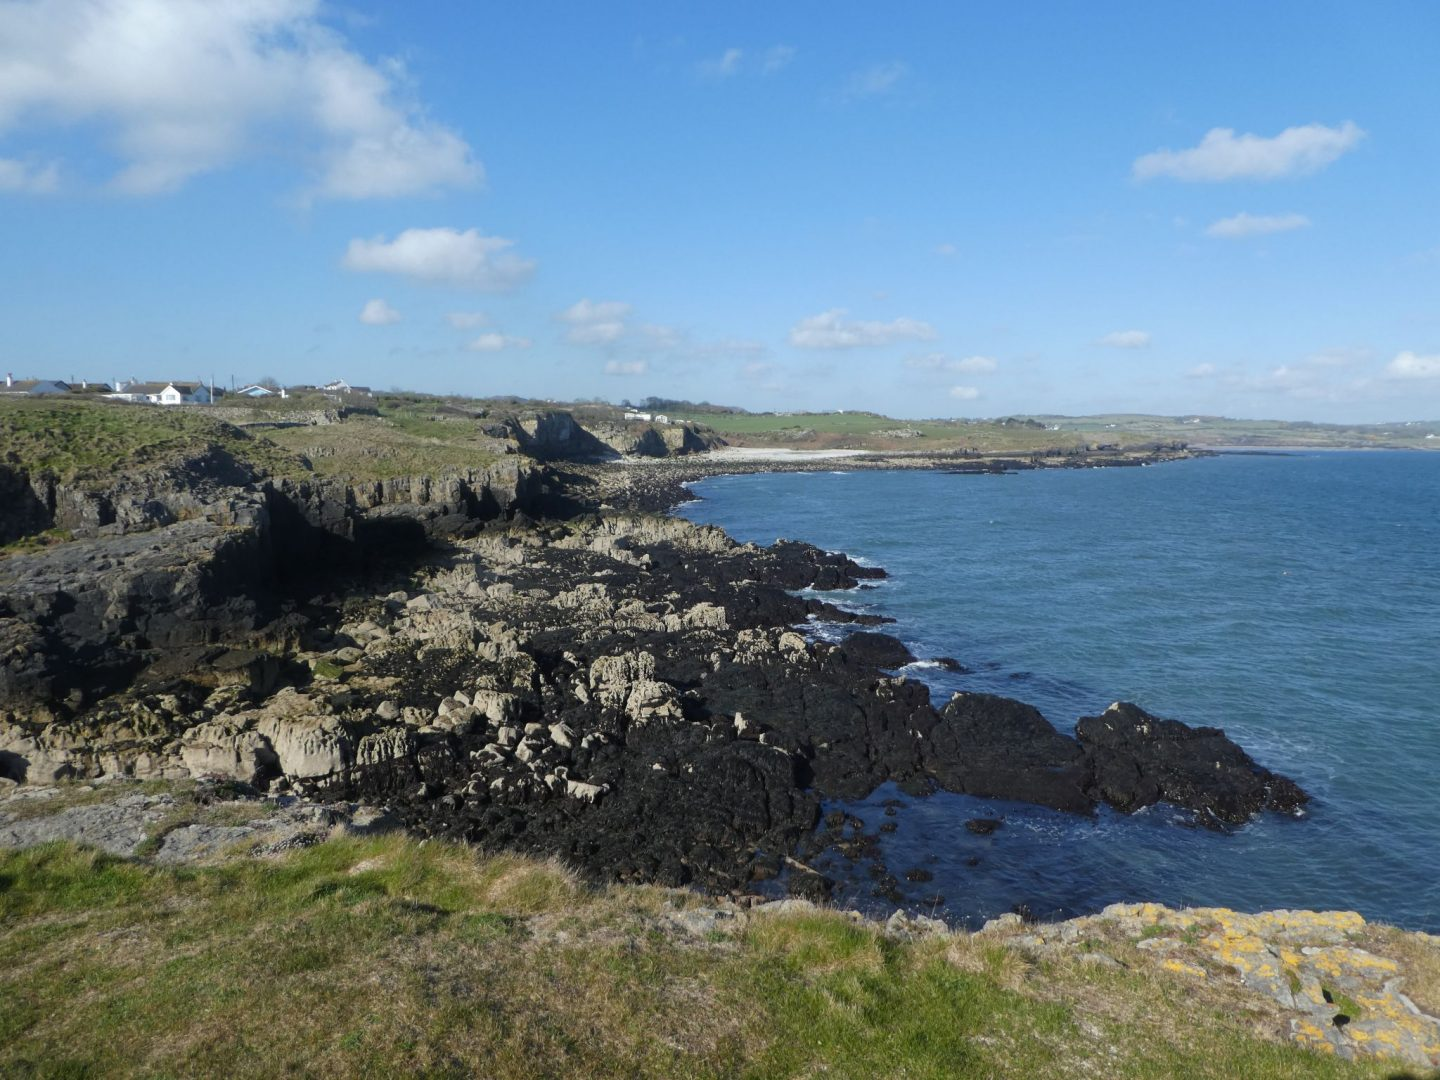 Anglesey Coastal Path, Wales (6 to 19 April 2019)